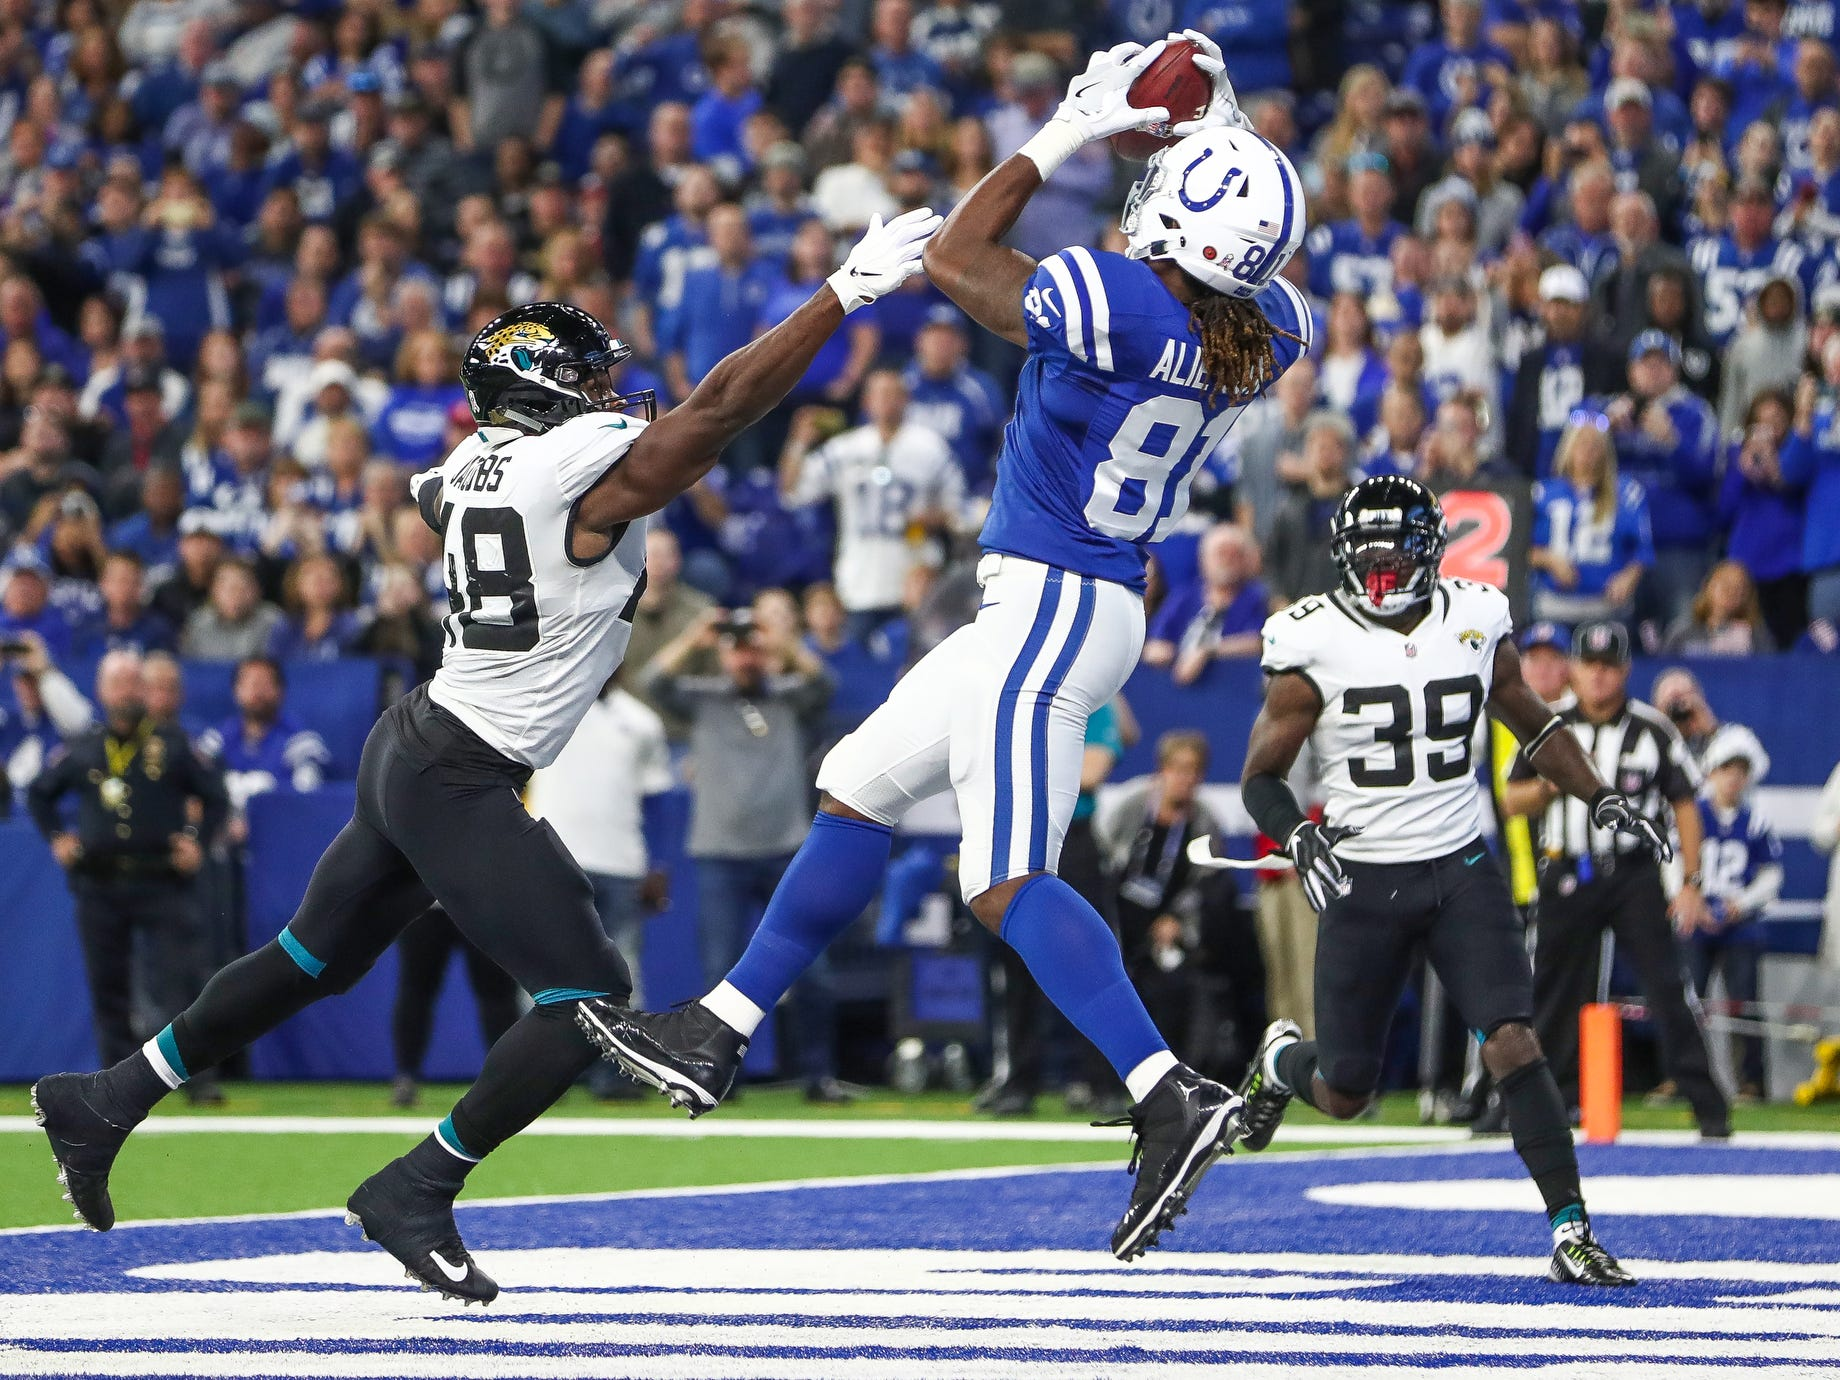 Indianapolis Colts tight end Mo Alie-Cox (81) pulls in a touchdown pass against the Jacksonville Jaguars at Lucas Oil Stadium on Sunday, Nov. 11, 2018.